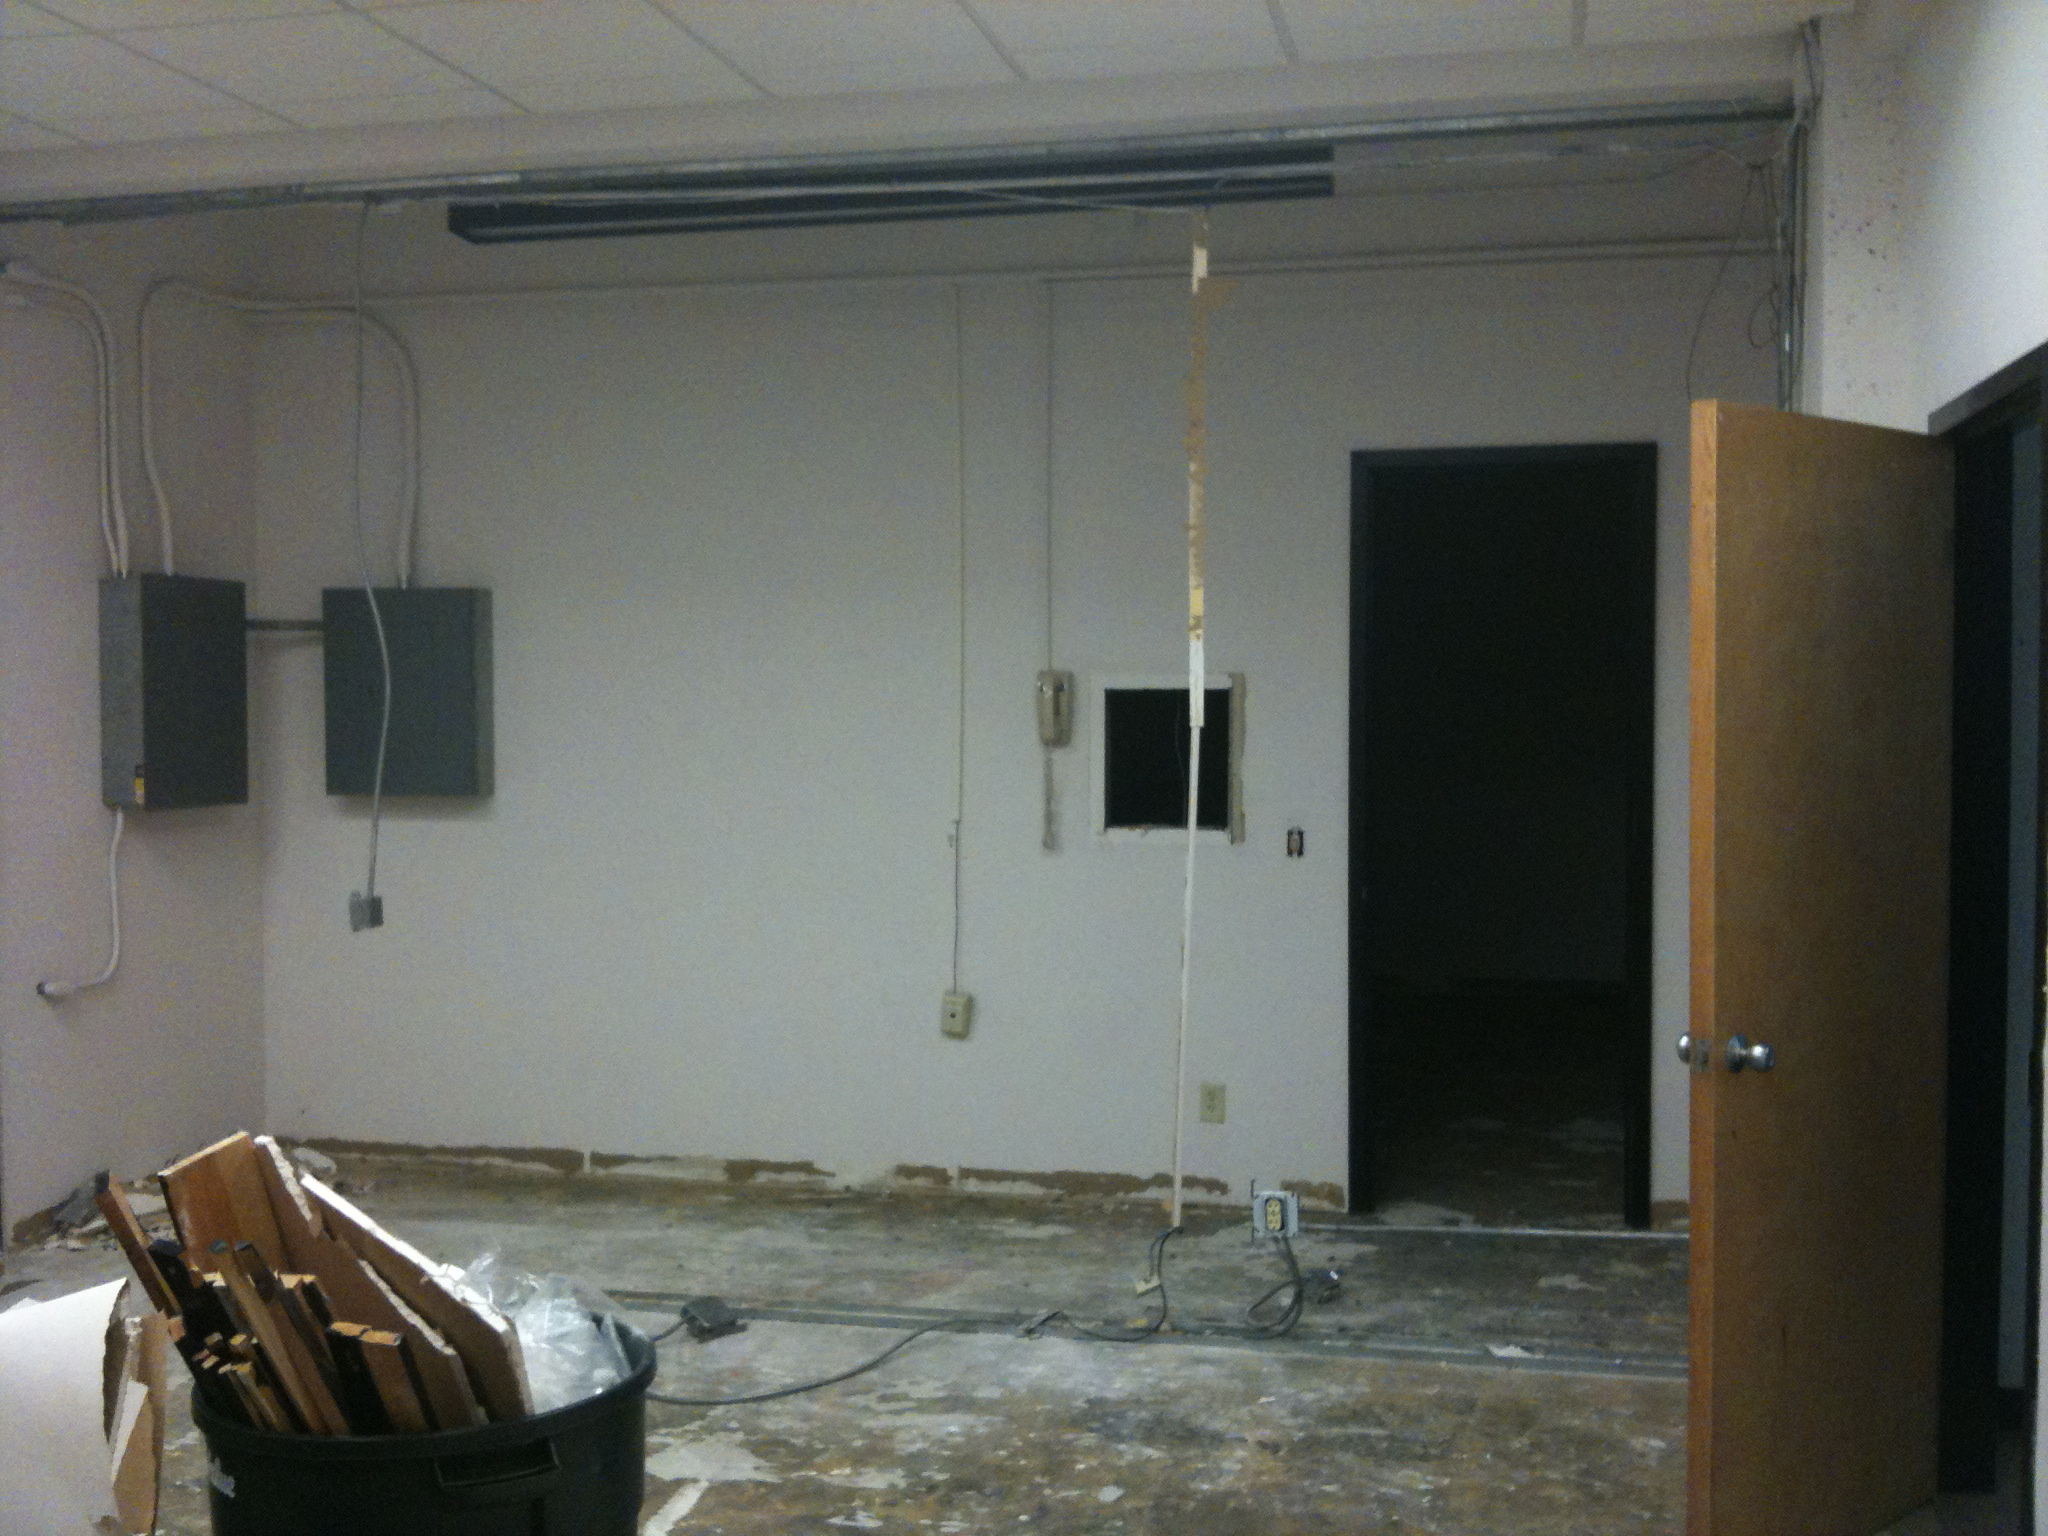 On Friday, 7/16, the wall between Googie (the film preview room) and the projection booth/hallway/room got taken down